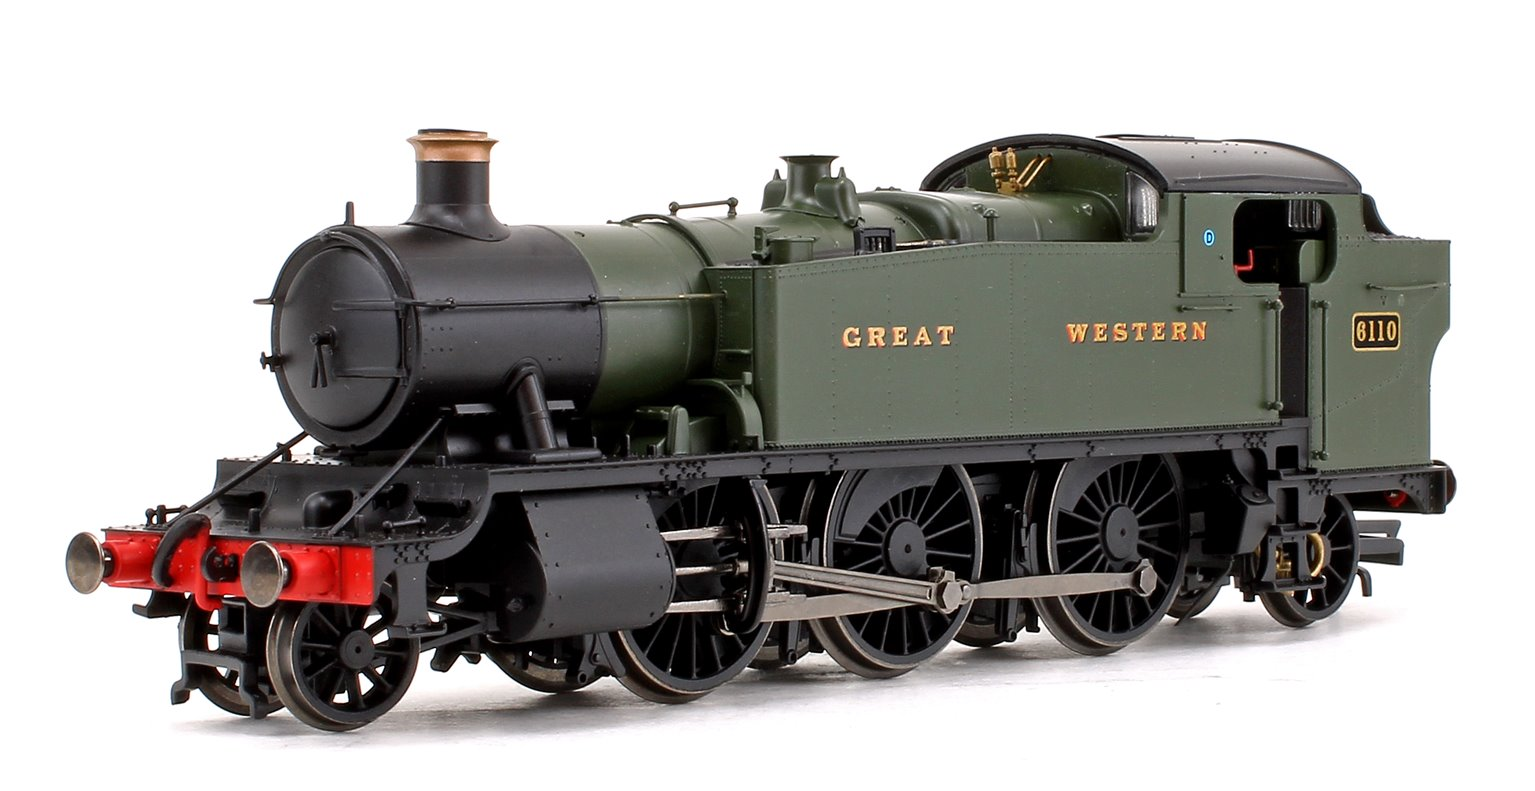 Class 61xx Large Prairie GWR Green 2-6-2 Tank Locomotive No.6110 (DCC Fitted)